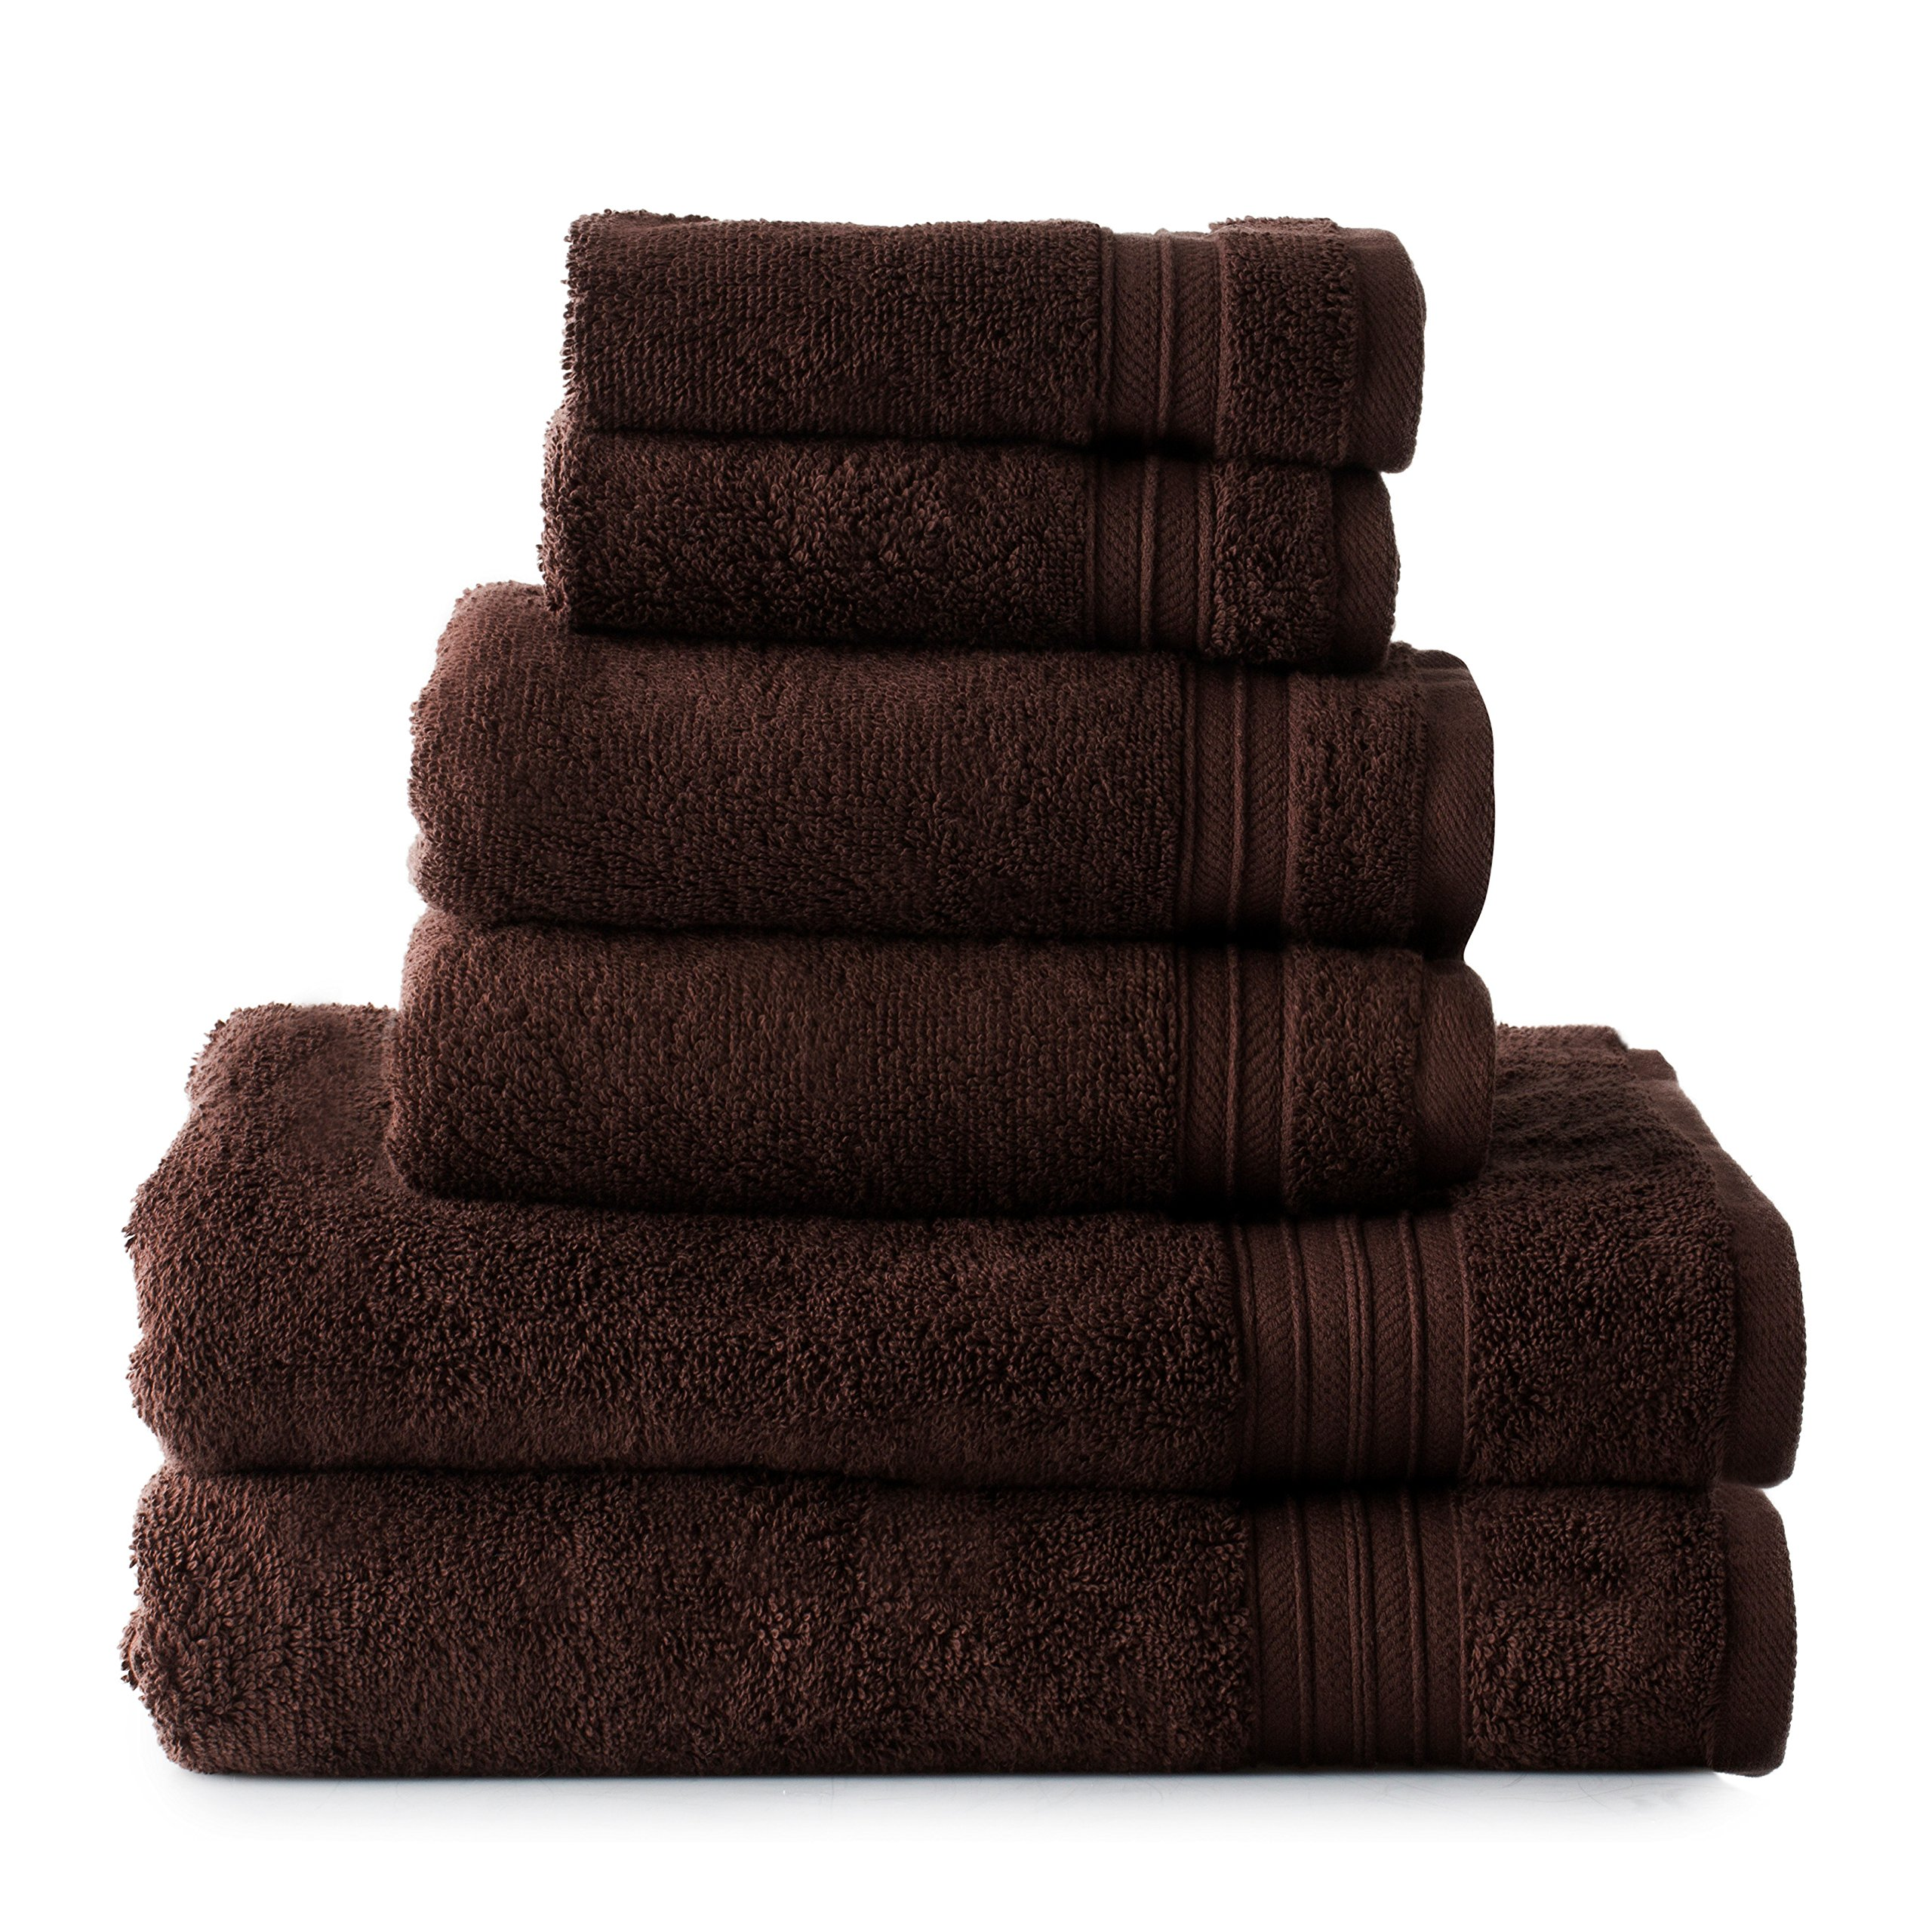 Welspun HygroSoft Fast Drying and Absorbent 100% Cotton 6-piece Towel Set, Java